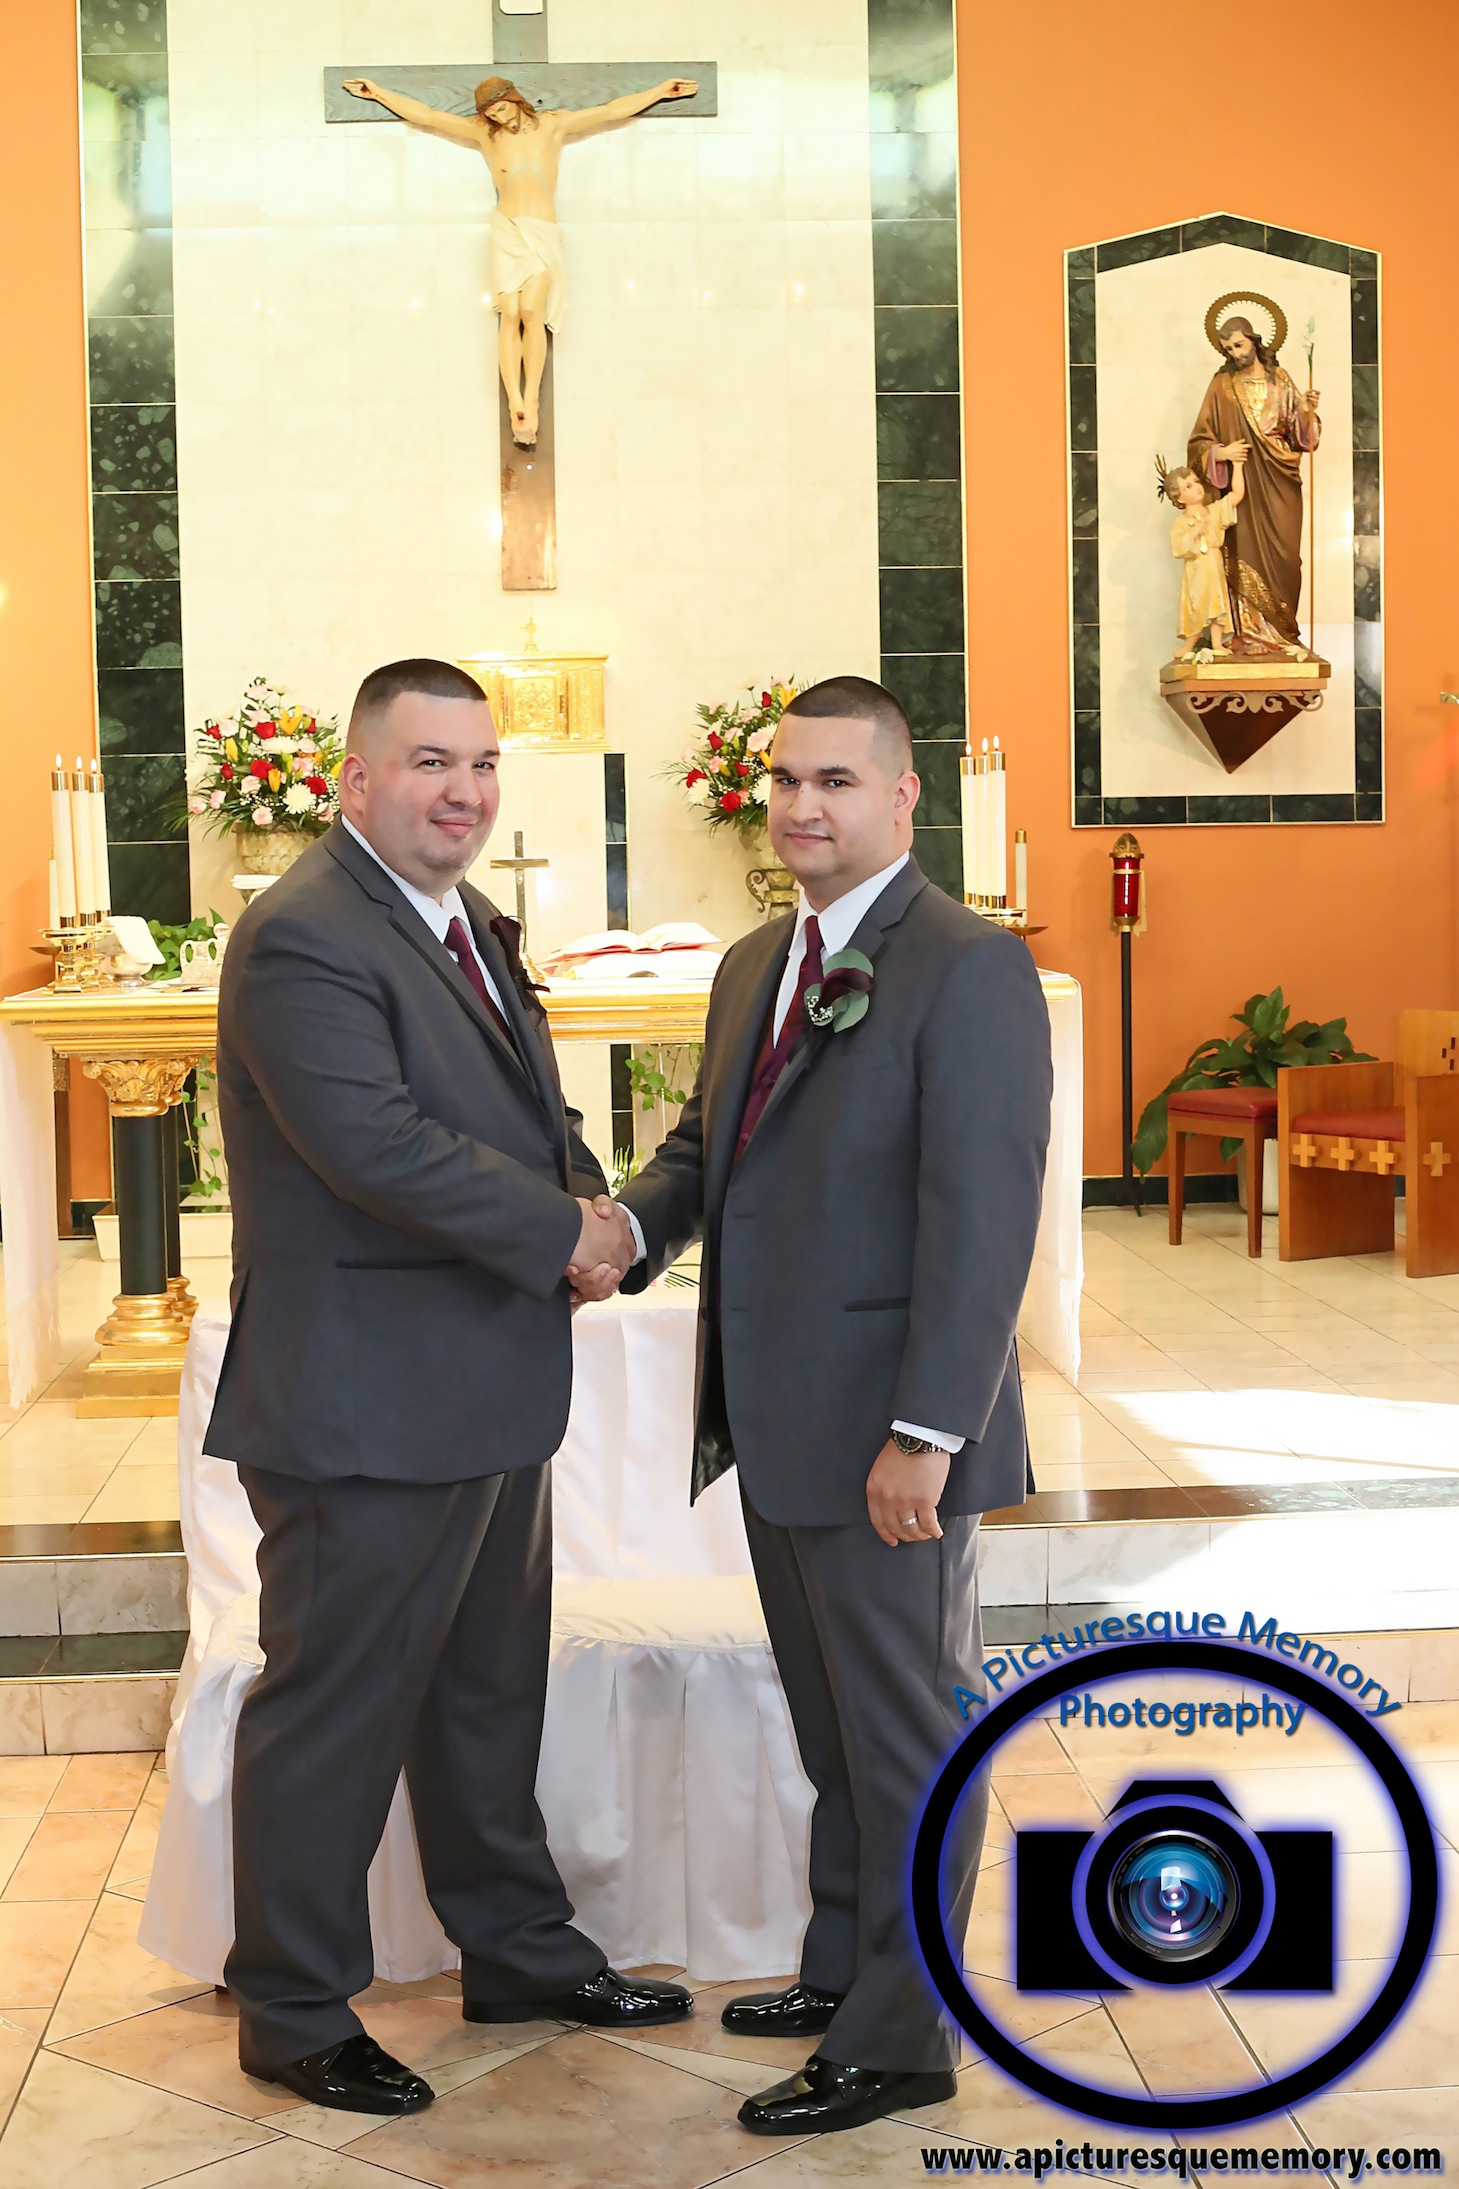 #njwedding, #njweddingphotography, #newbrunswickweddingphotographer#weddingphotos, #apicturesquememoryphotography, #ourladyofmountcarmelweddingphotographer, #groom, #bestman, #weddingceremony